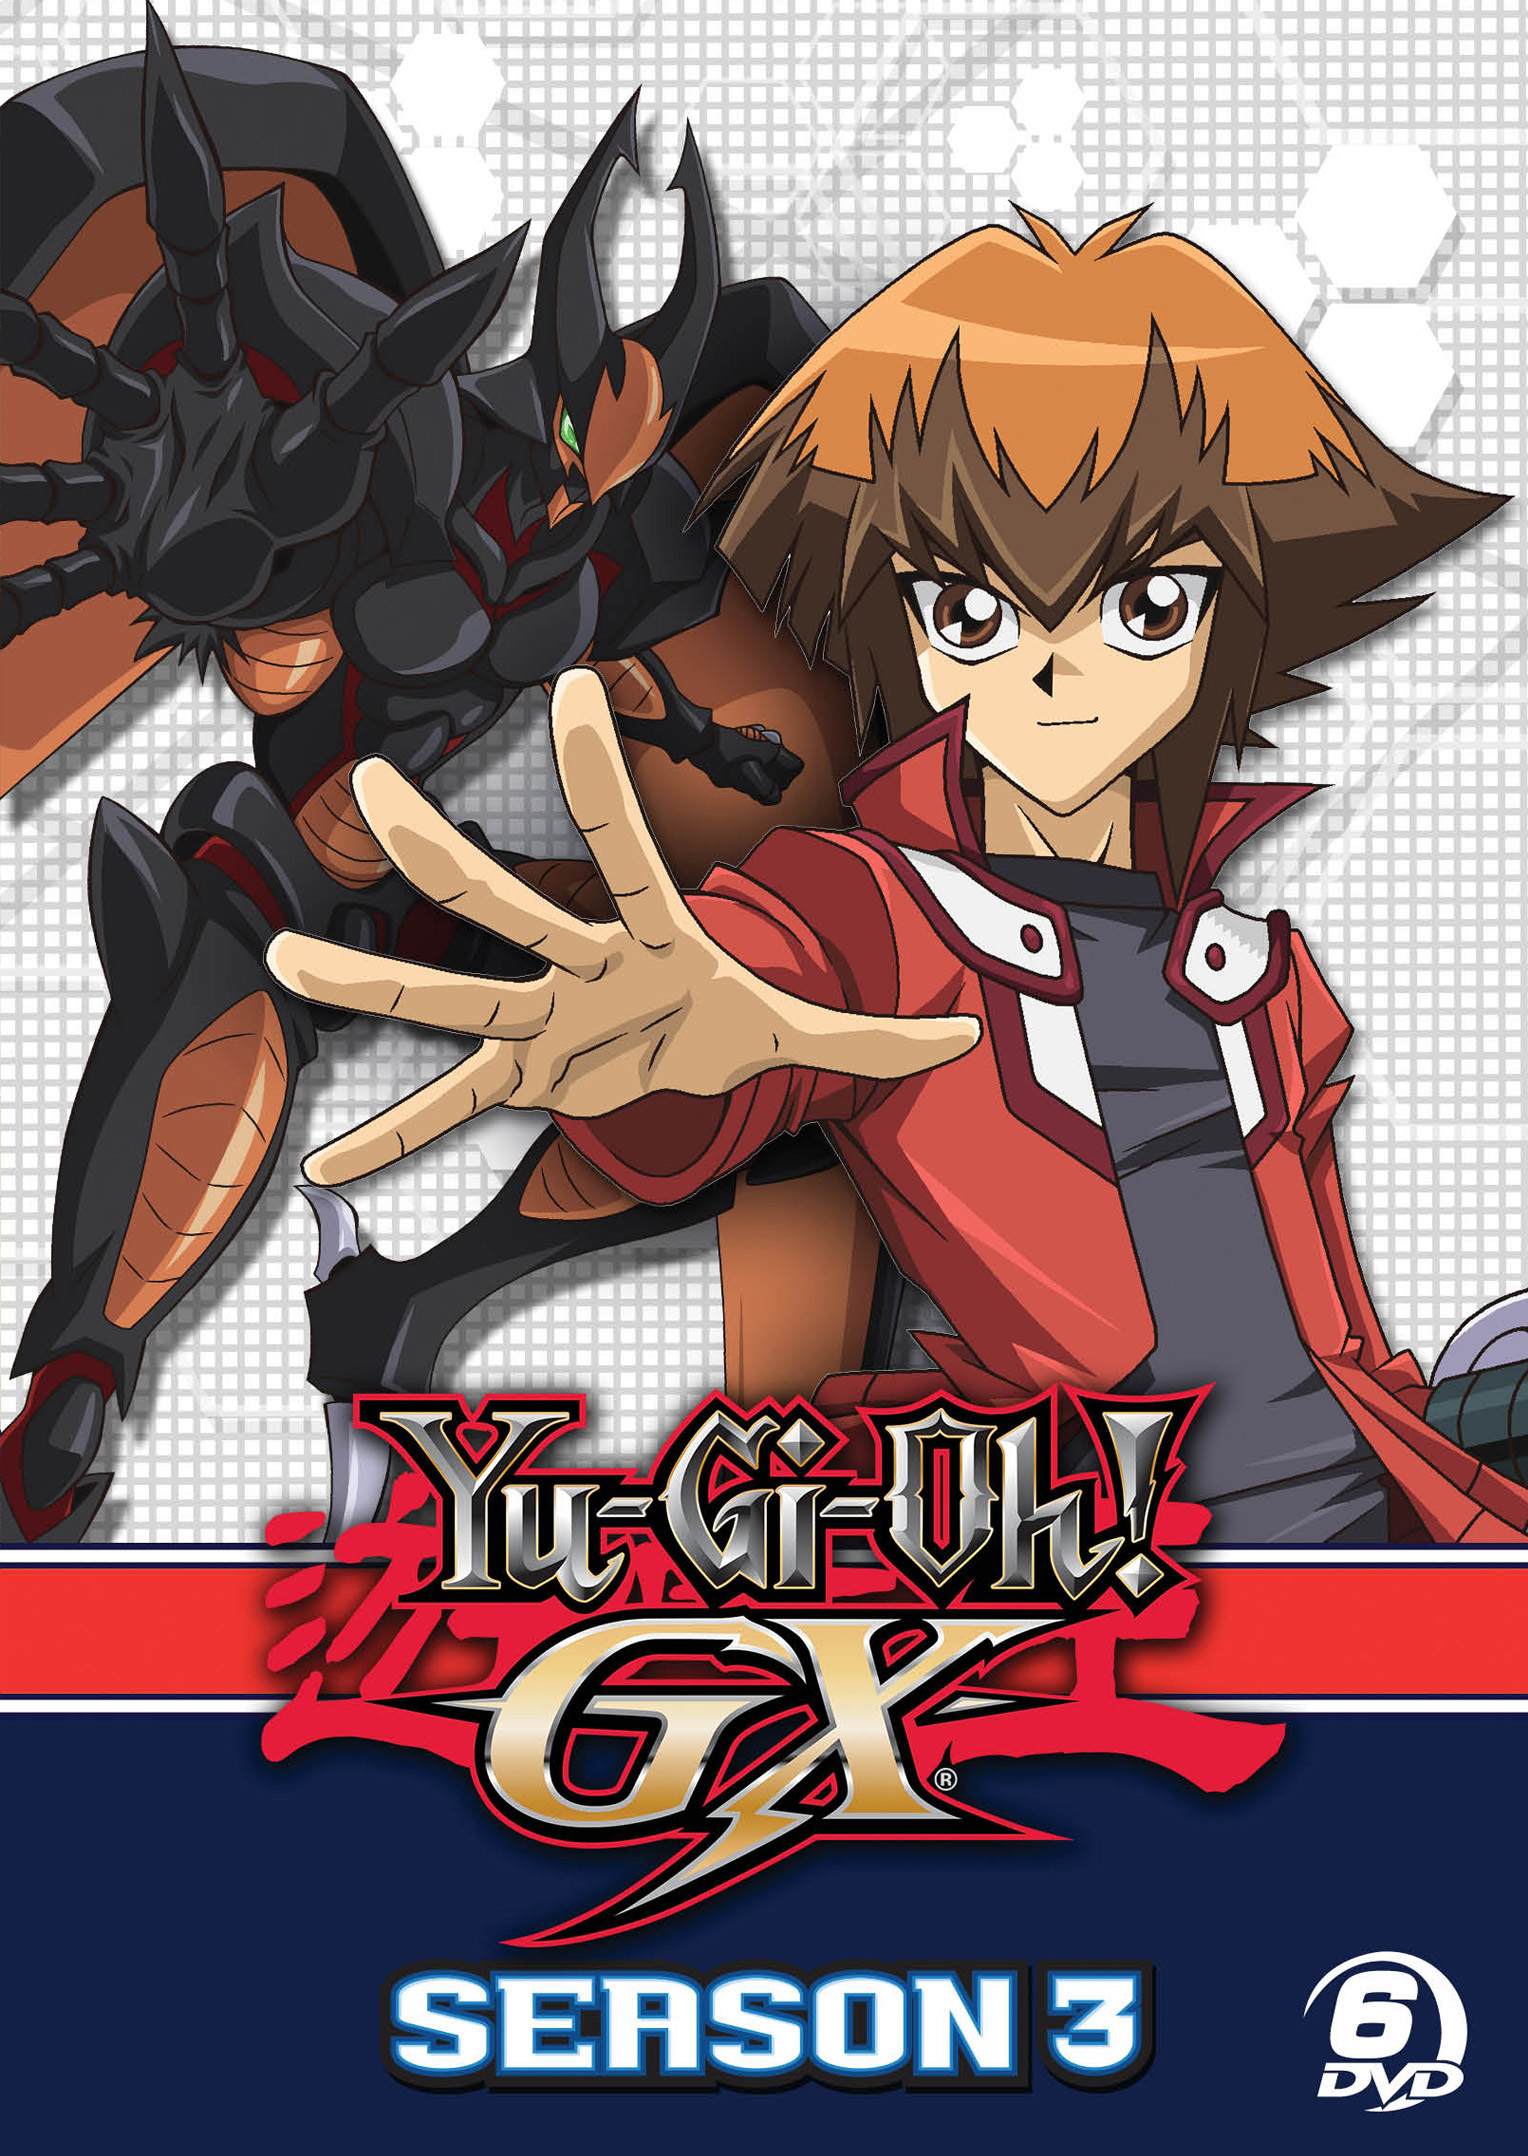 yugioh zexal dating quiz Date added 10/27/12 accuracy rating: 94% (196 votes) yu-gi-oh quizzes tags character, ygo, yu-gi-oh, yugi favorited 34 members feedback 1 comment it's the start of the school day what's your first thoughts zzzzzzzzzz wonder who i can insult or scare today i really hope that my friends and i all ace that big test i hope my friends.